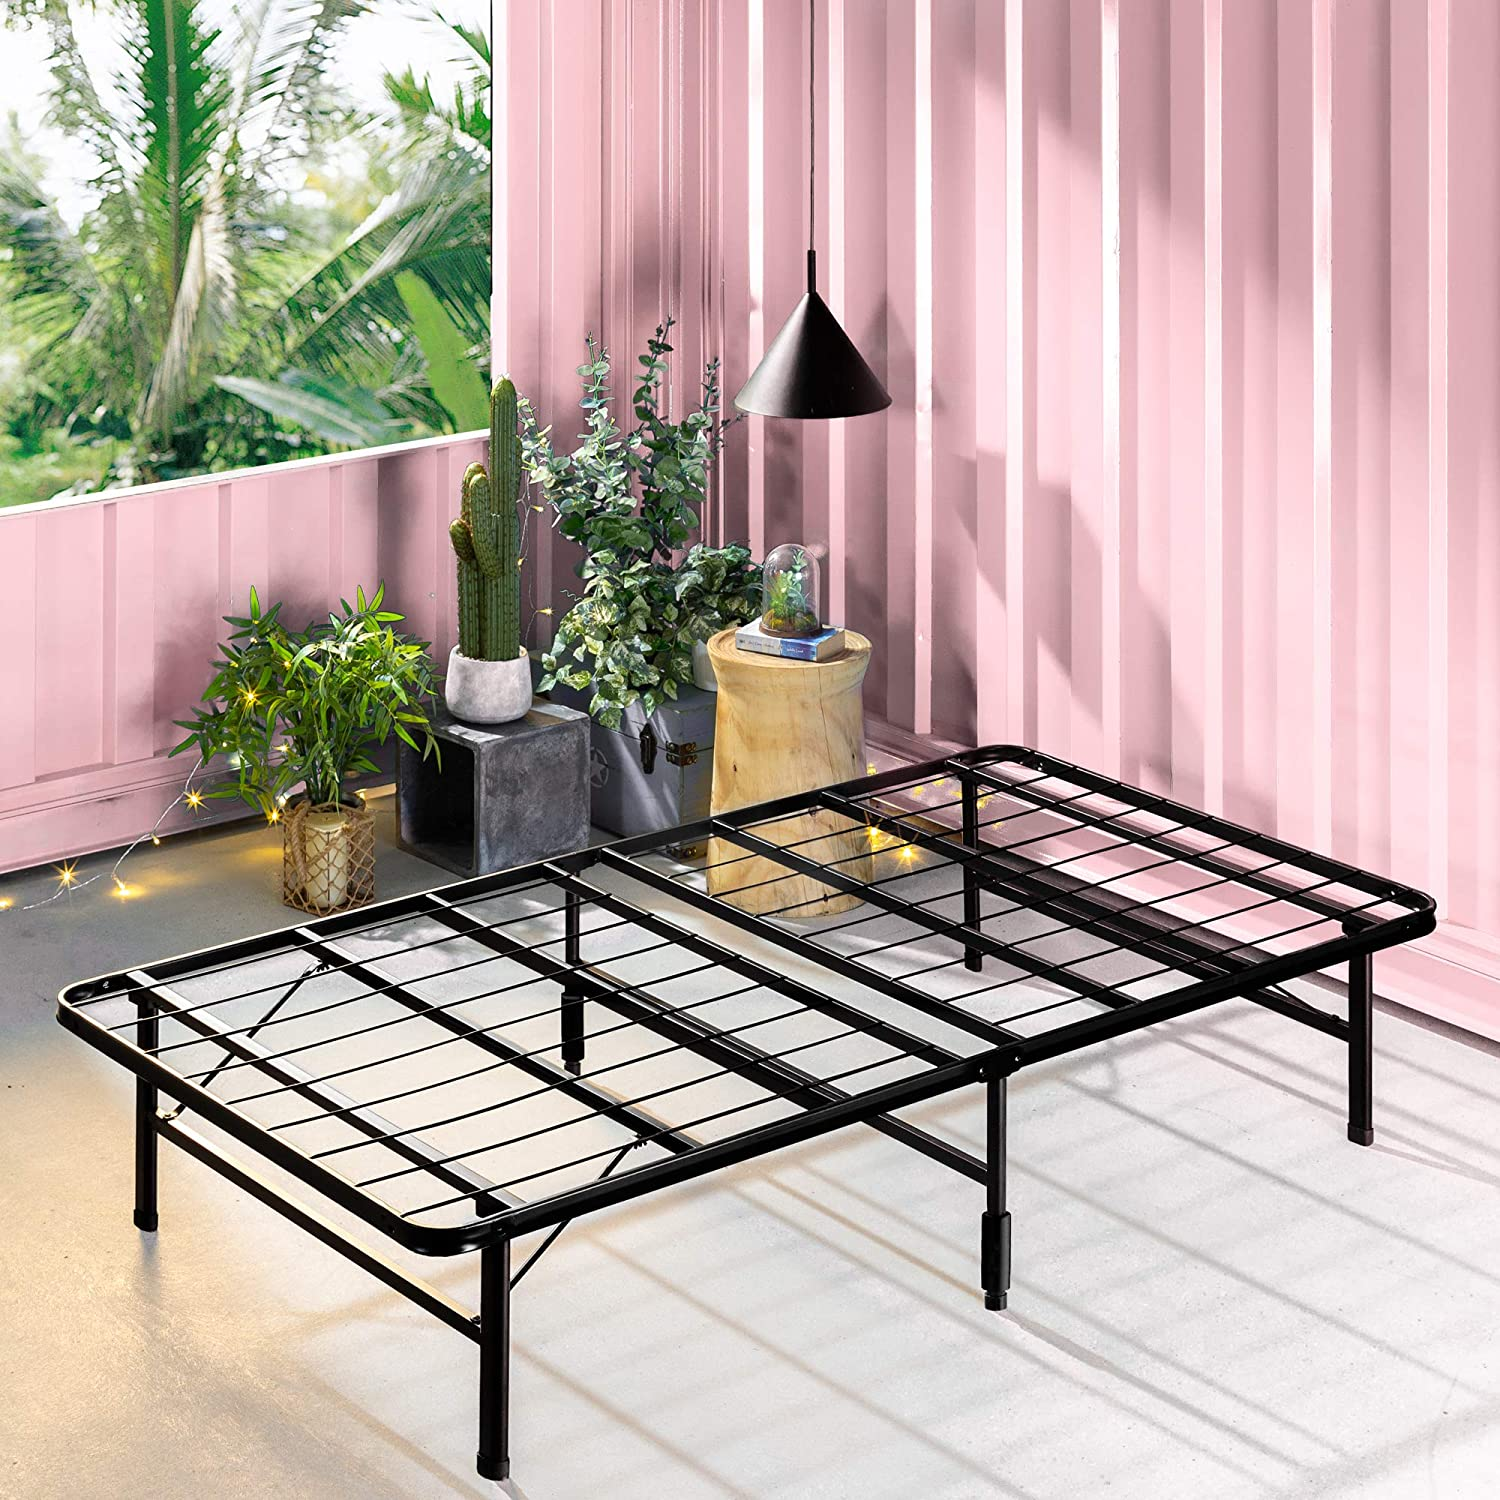 Enjoy fast, free nationwide shipping!  Owned by a husband and wife team of high-school music teachers, HawkinsWoodshop.com is your one stop shop for affordable furniture.  Shop HawkinsWoodshop.com for solid wood & metal modern, traditional, contemporary, industrial, custom, rustic, and farmhouse furniture including our Black Zero Assembly Bed Frame in Narrow Twin Size.